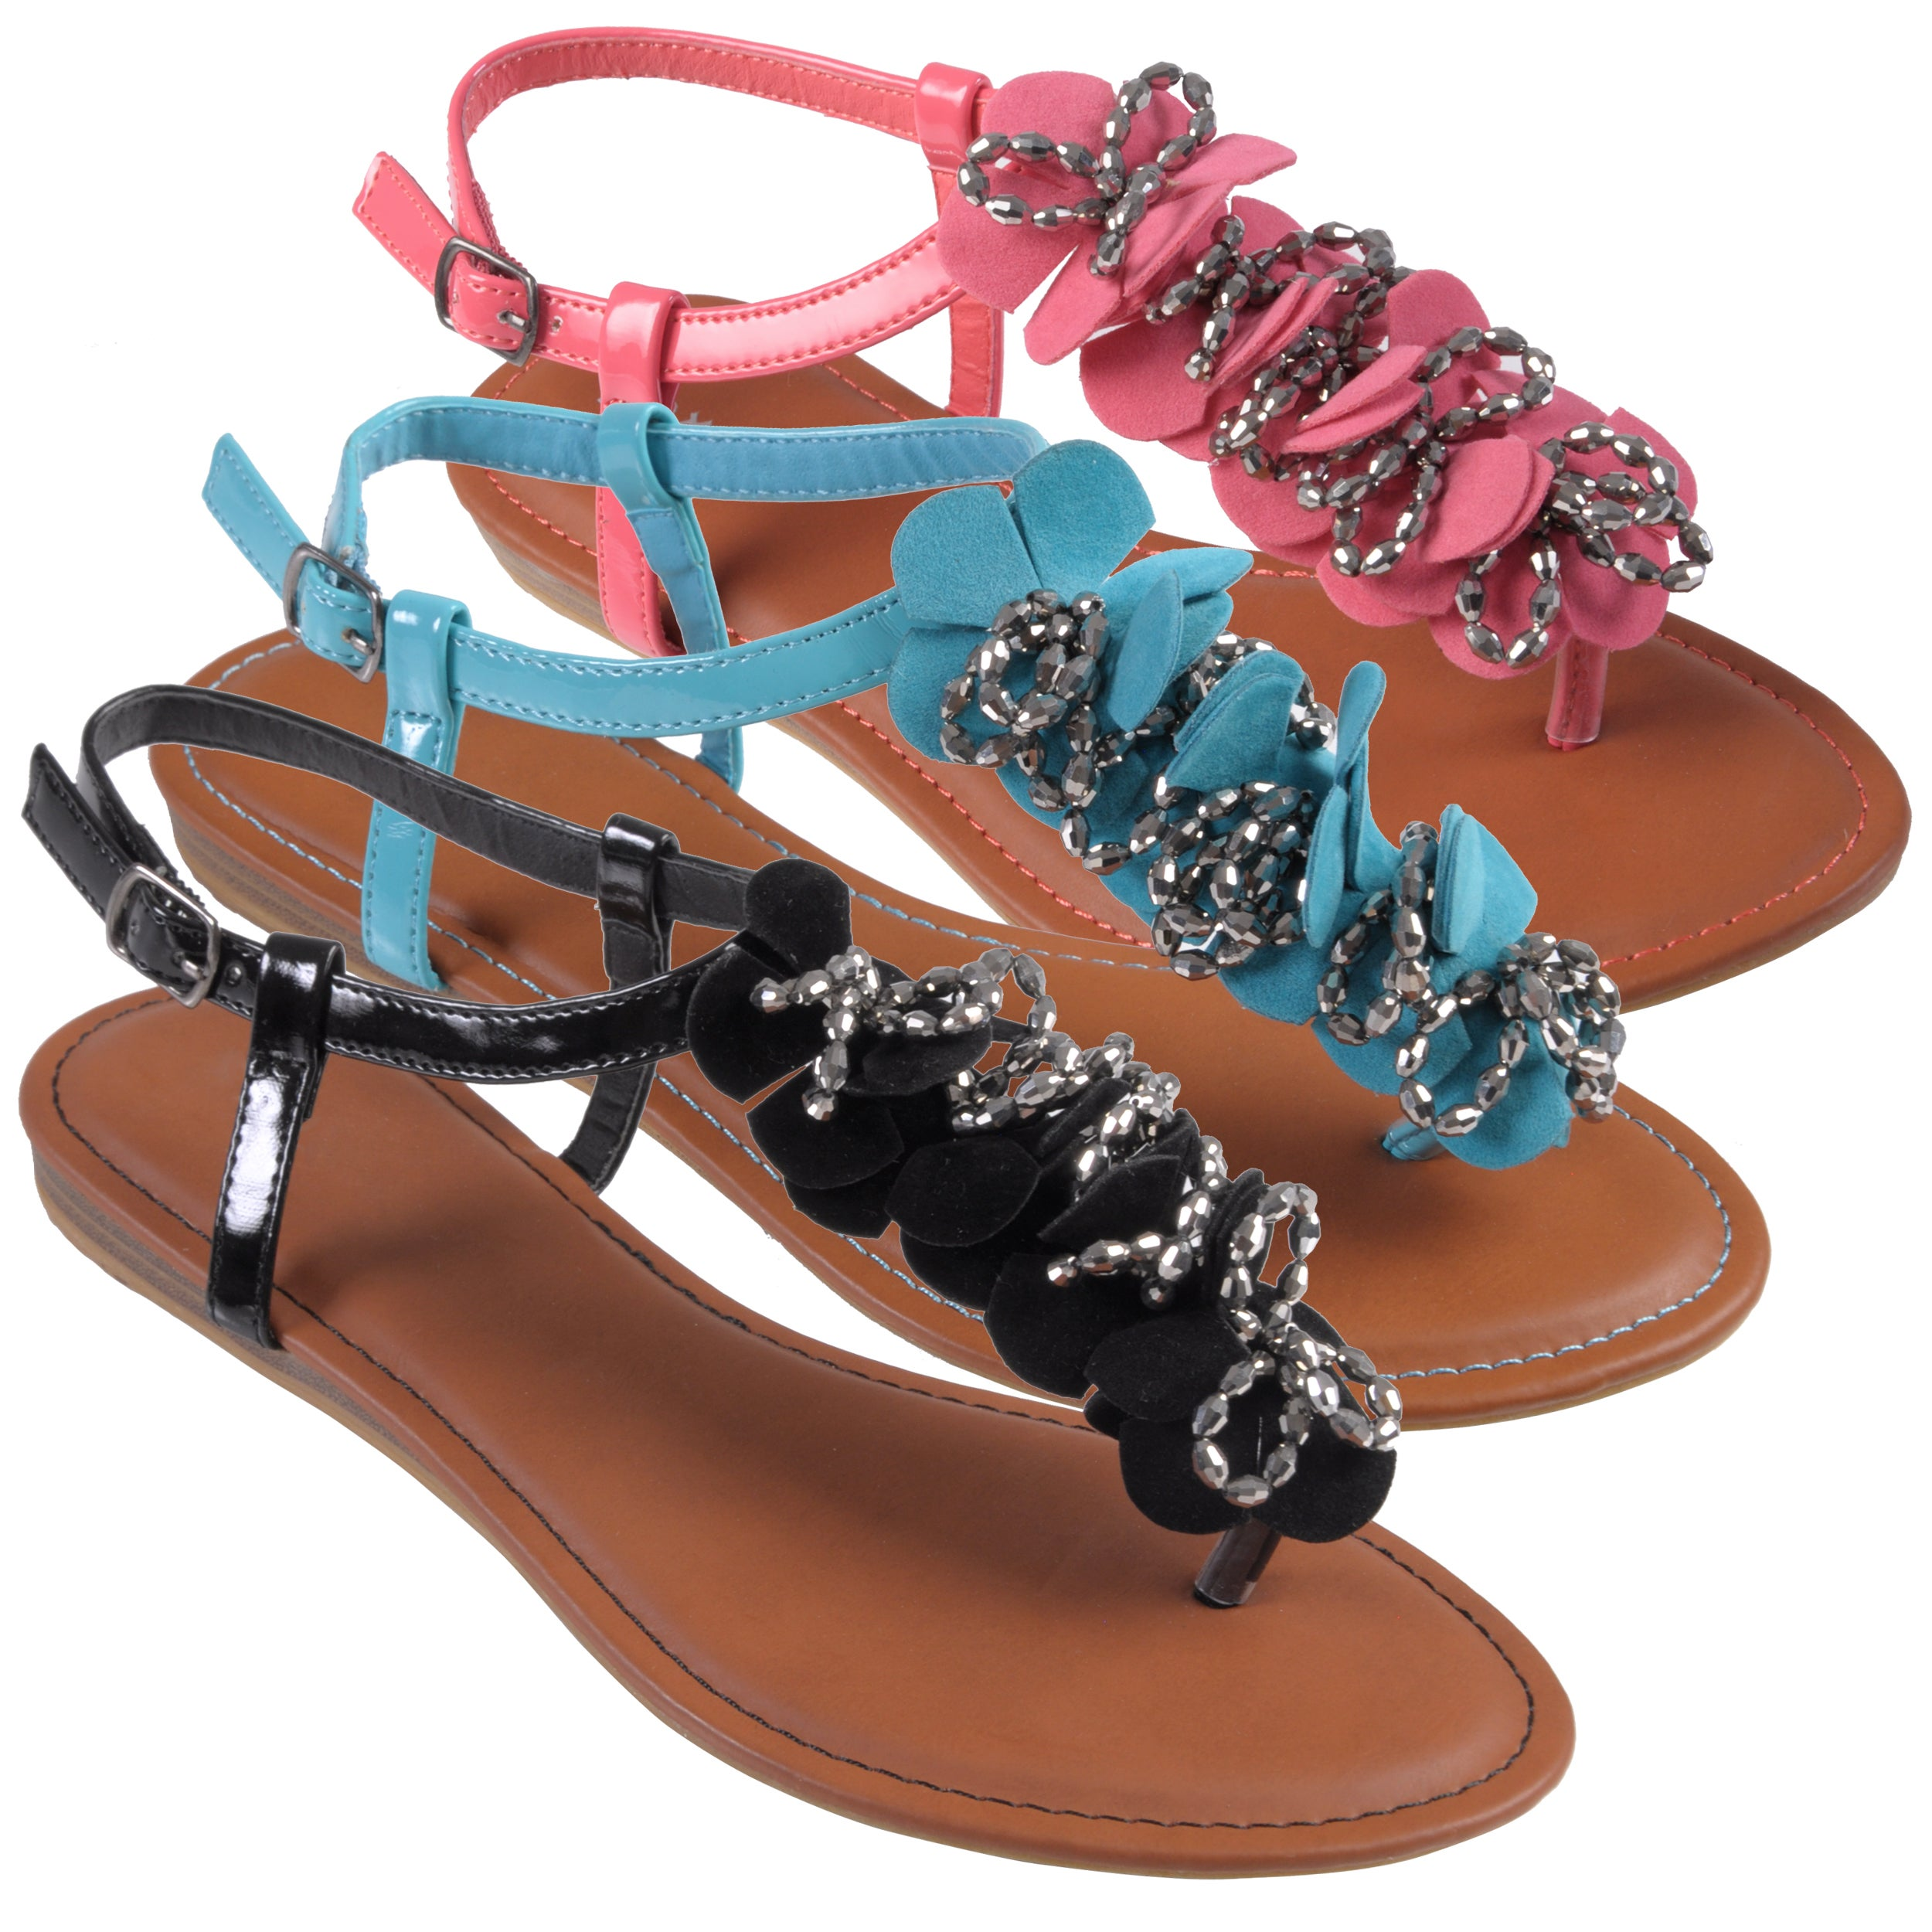 Journee Collection Women's 'Ashley-34' Embellished T-strap Sandals